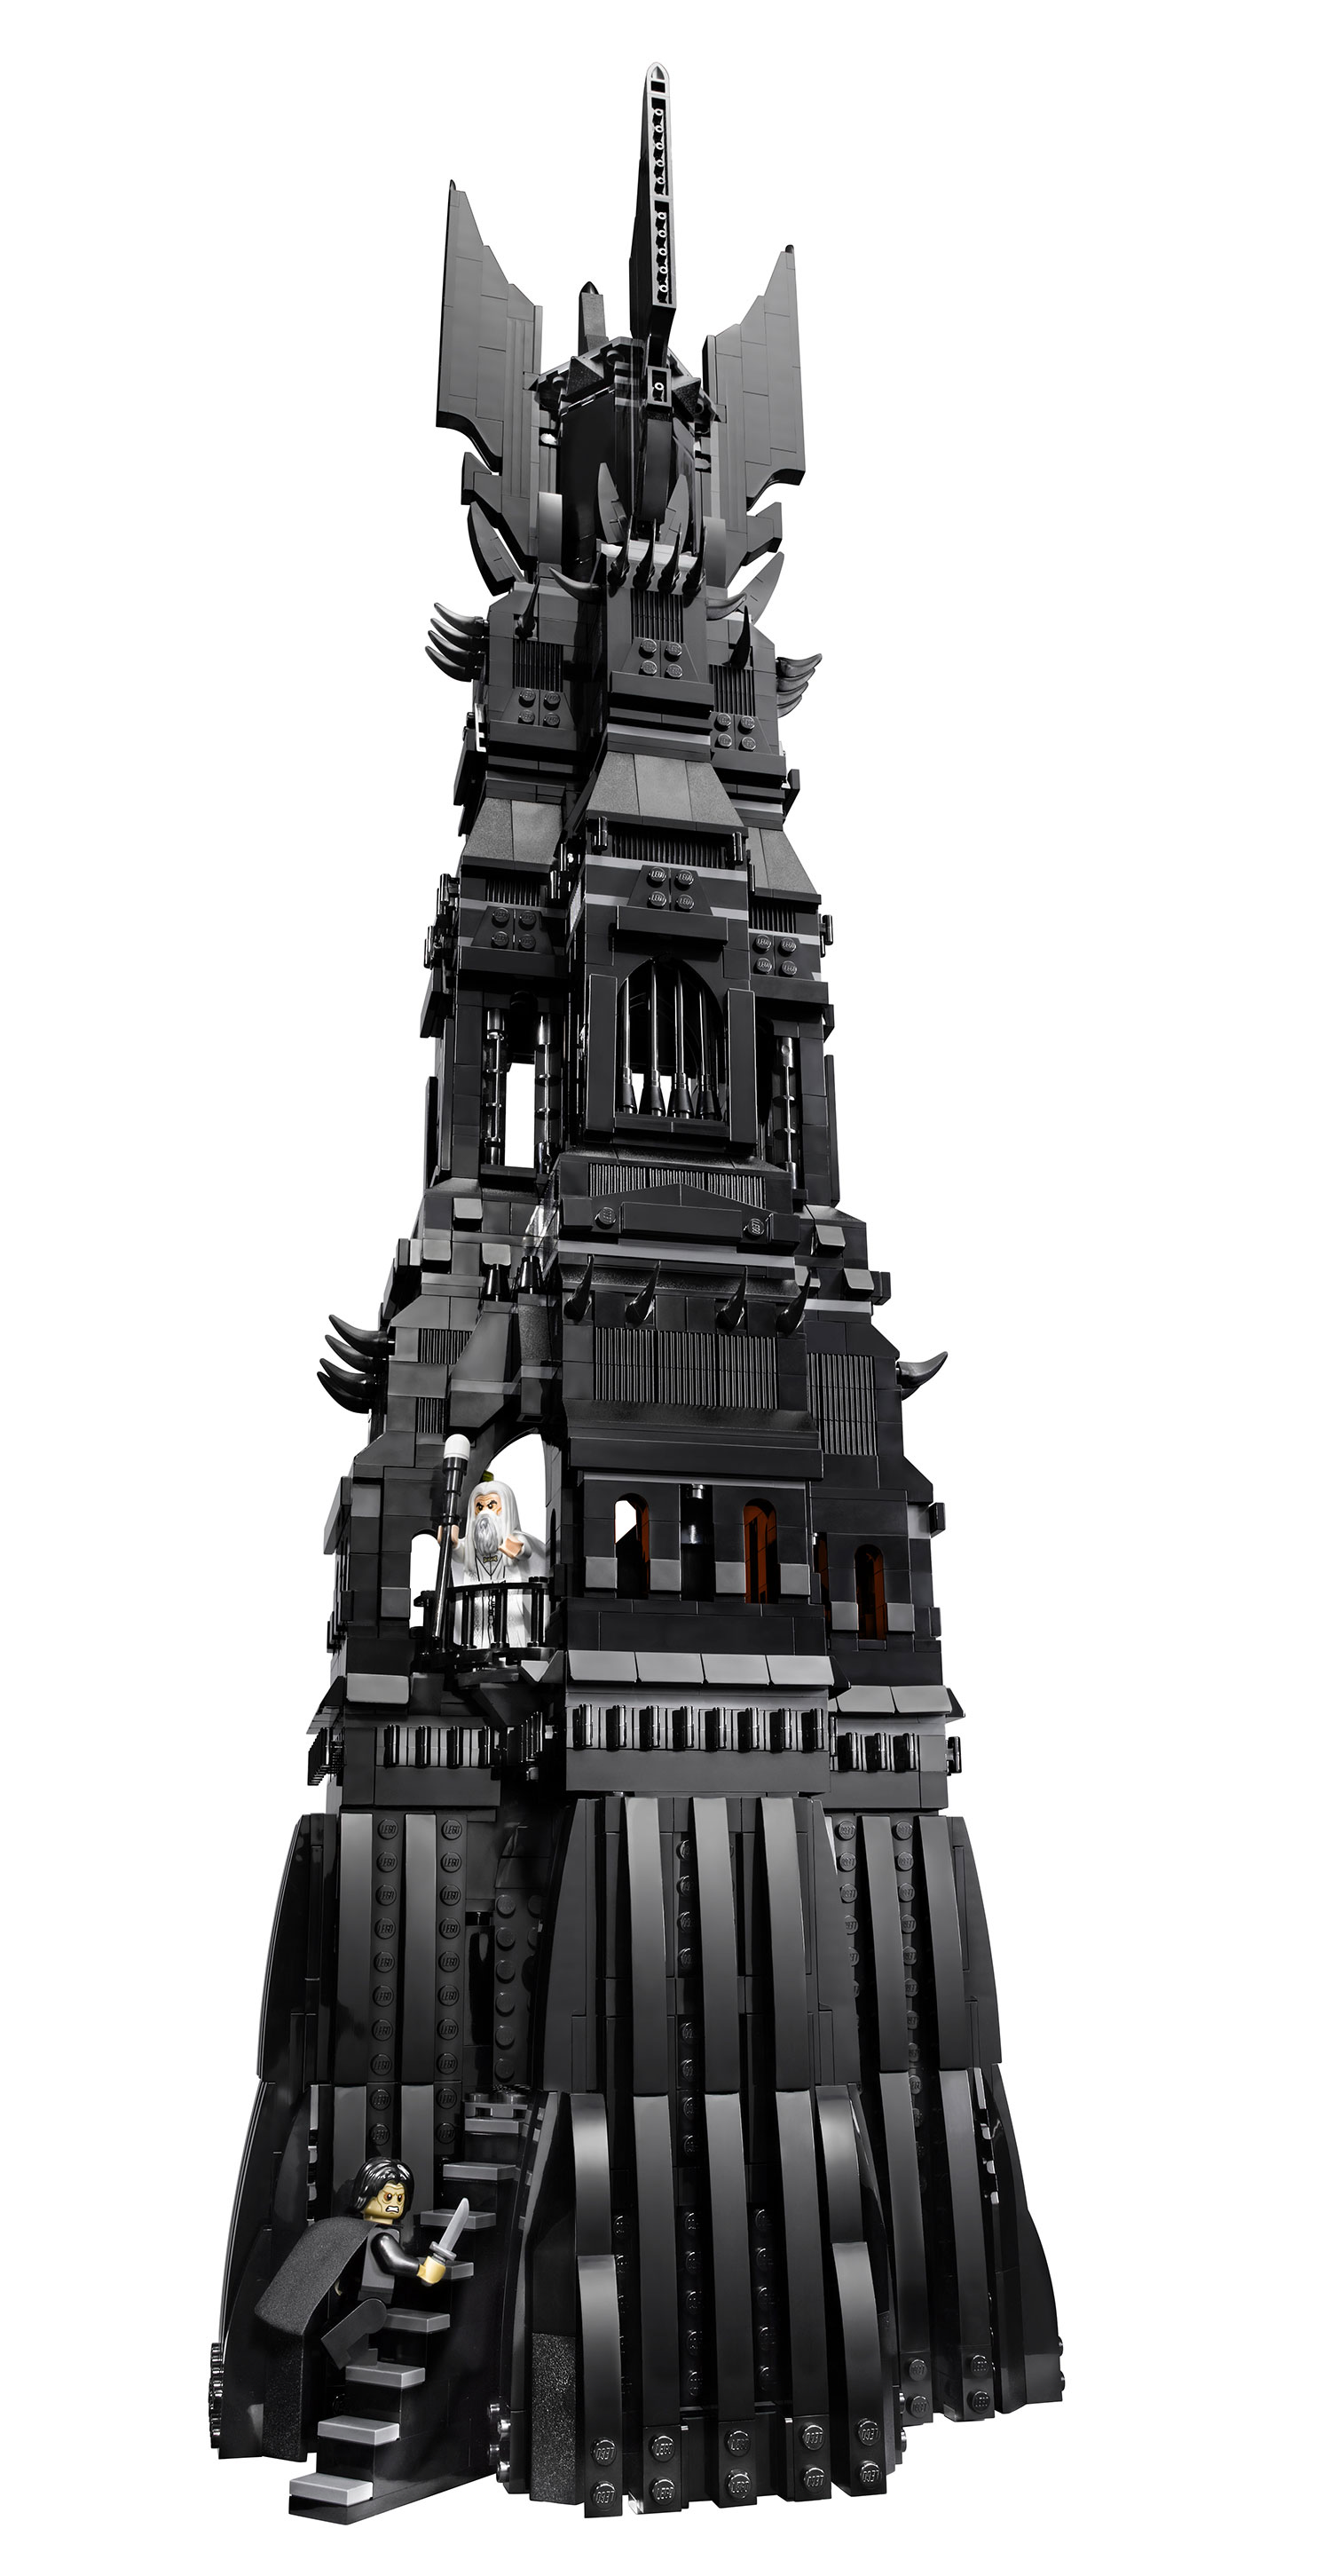 LEGO-Tower-Of-Orthanc-10237-main-tower